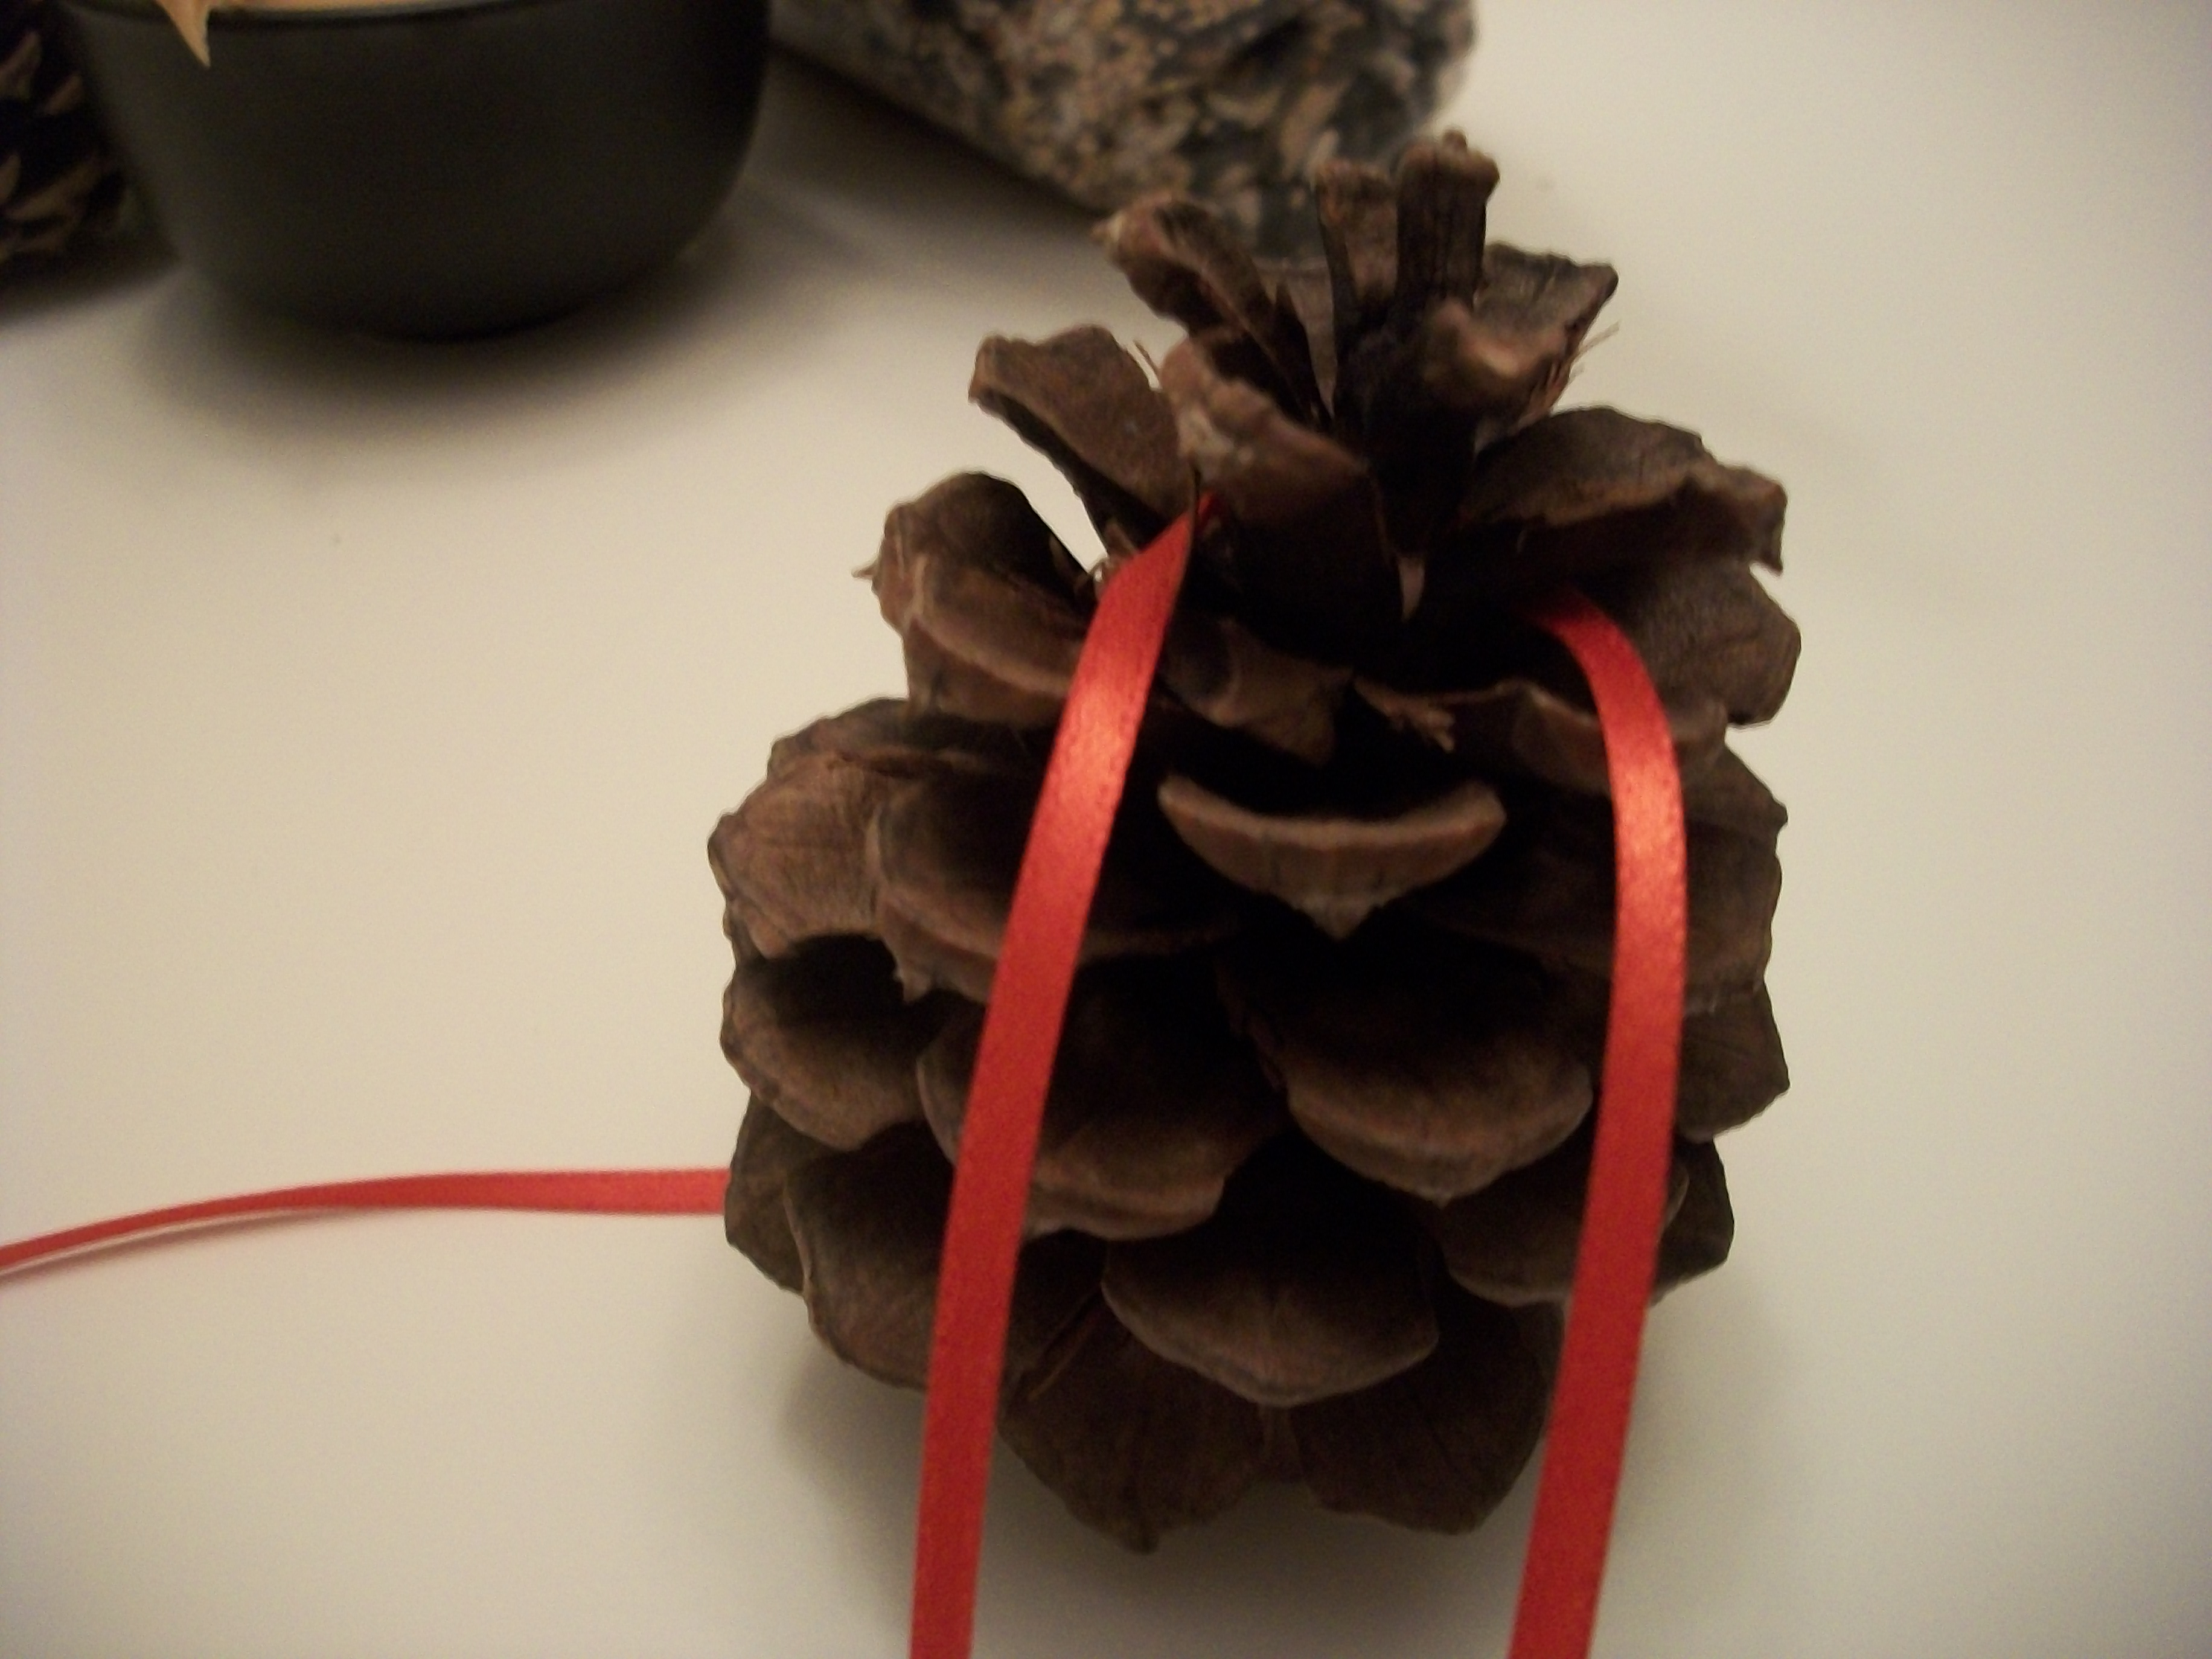 Move A Couple Of Layers From The Top Of The Pine Cone And